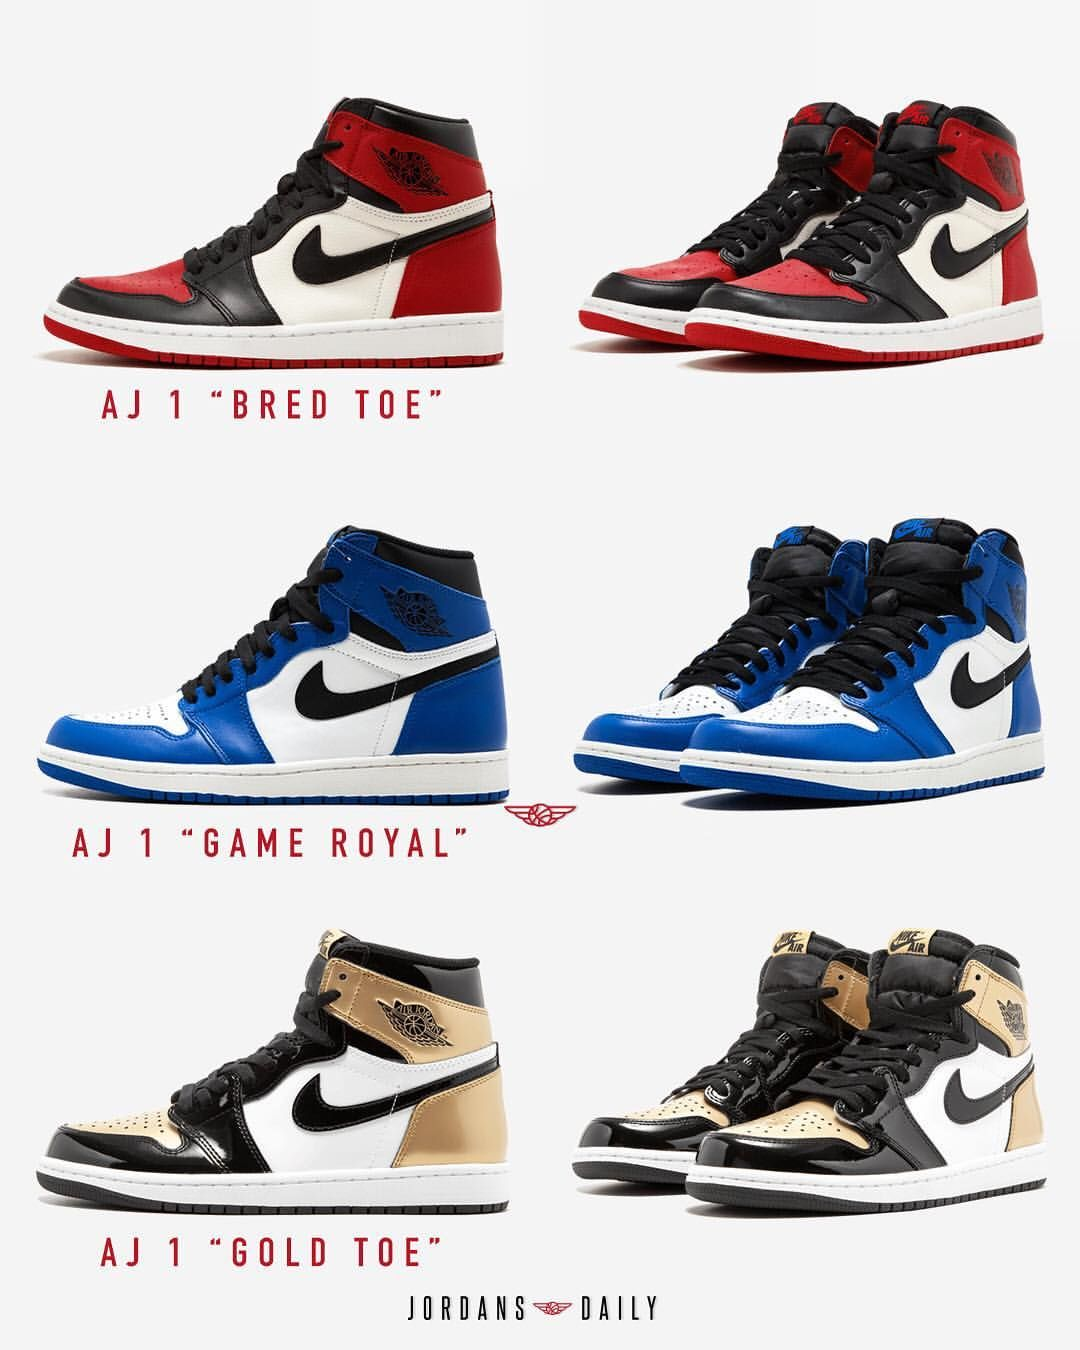 huge discount 8a44b 5477a Which of these 2018 GR Air Jordan 1 is your pick